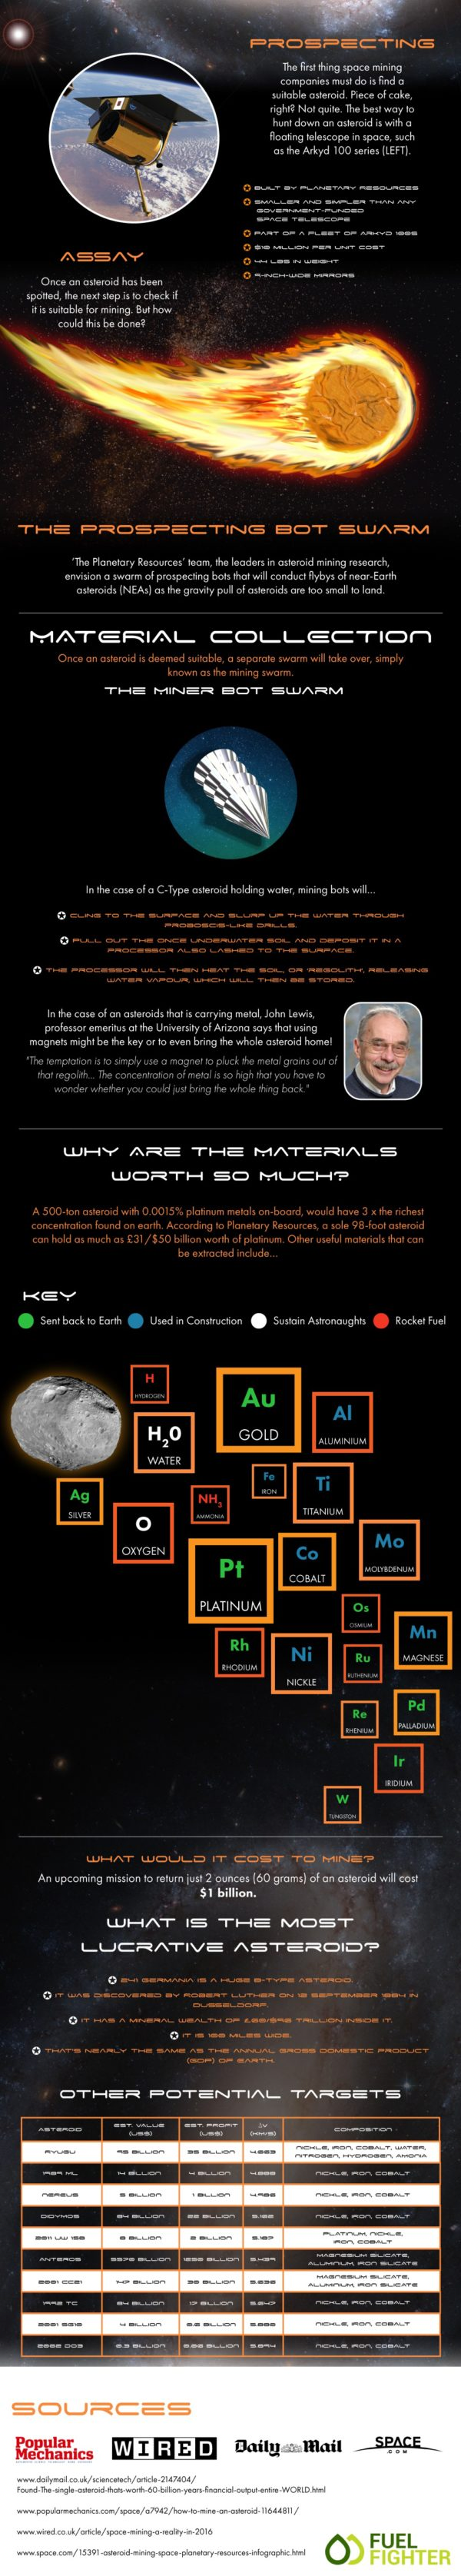 Asteroid Mining Infographic